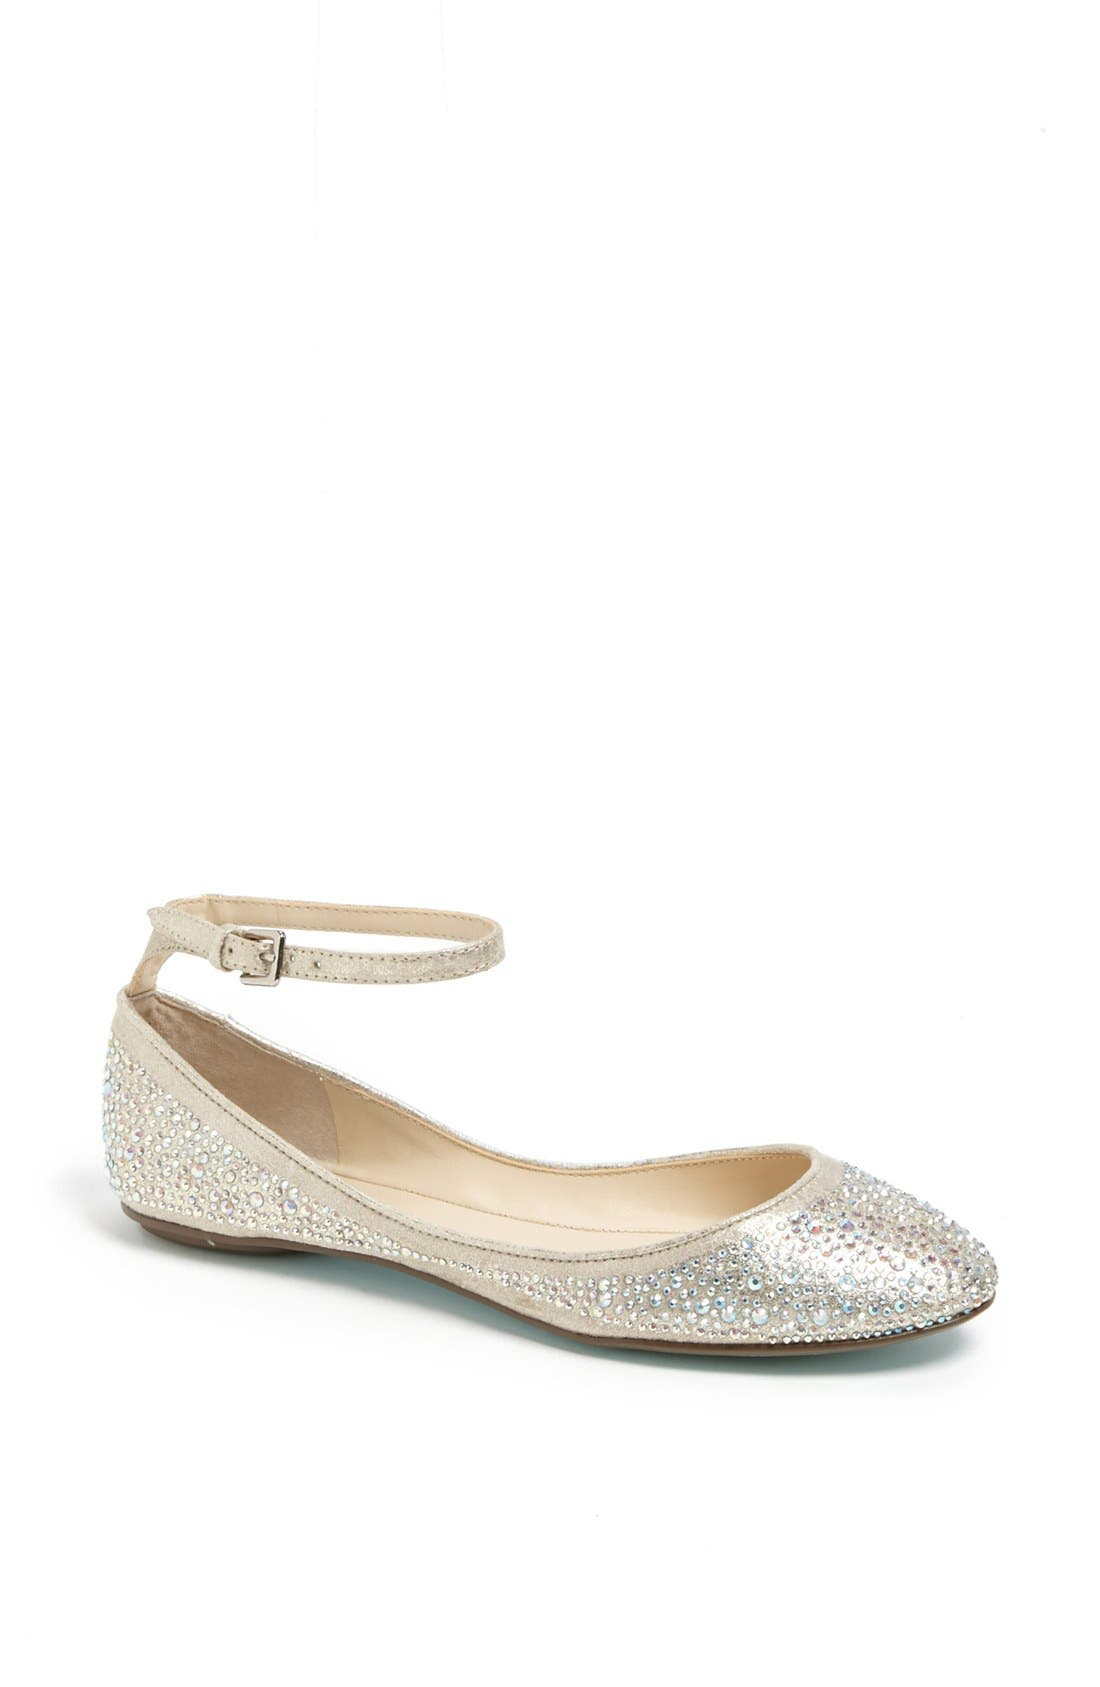 Alternate Image 1 Selected - Betsey Johnson 'Joy' Ankle Strap Crystal Embellished Flat